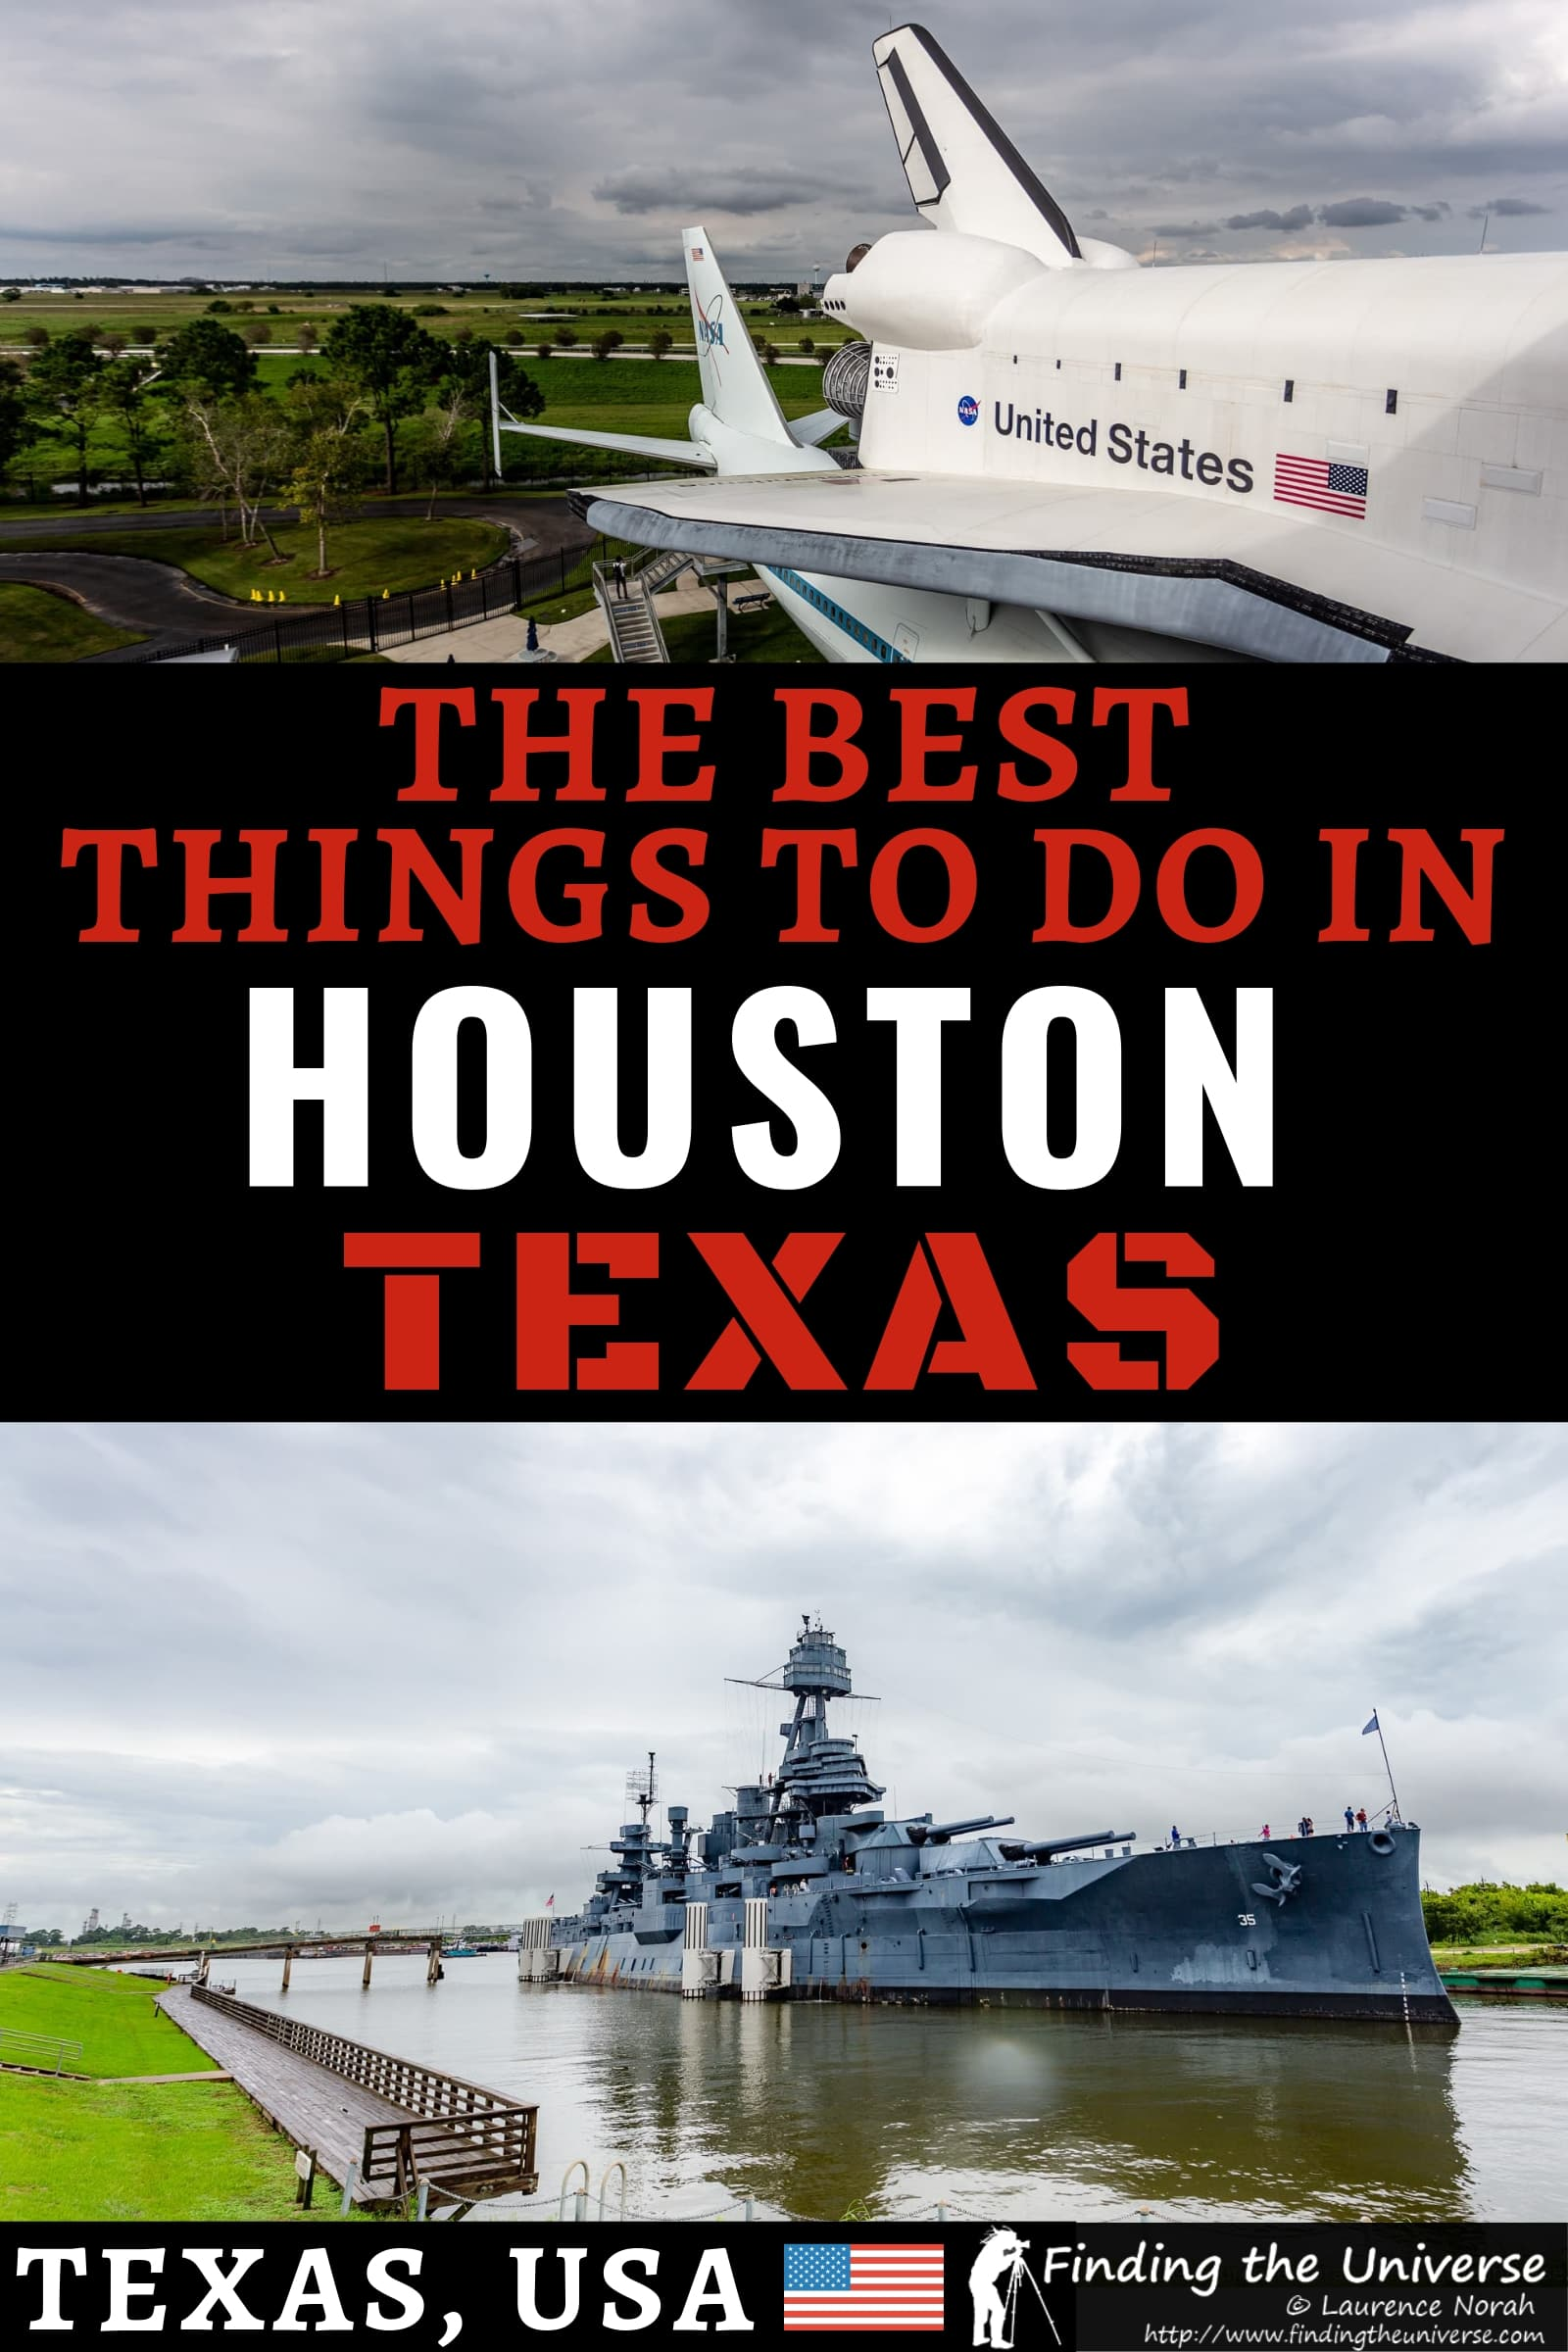 A detailed guide to things to do in Houston Texas. Includes all the major highlights of the city from the Space Centre to Houston Zoo, plus tips for visiting